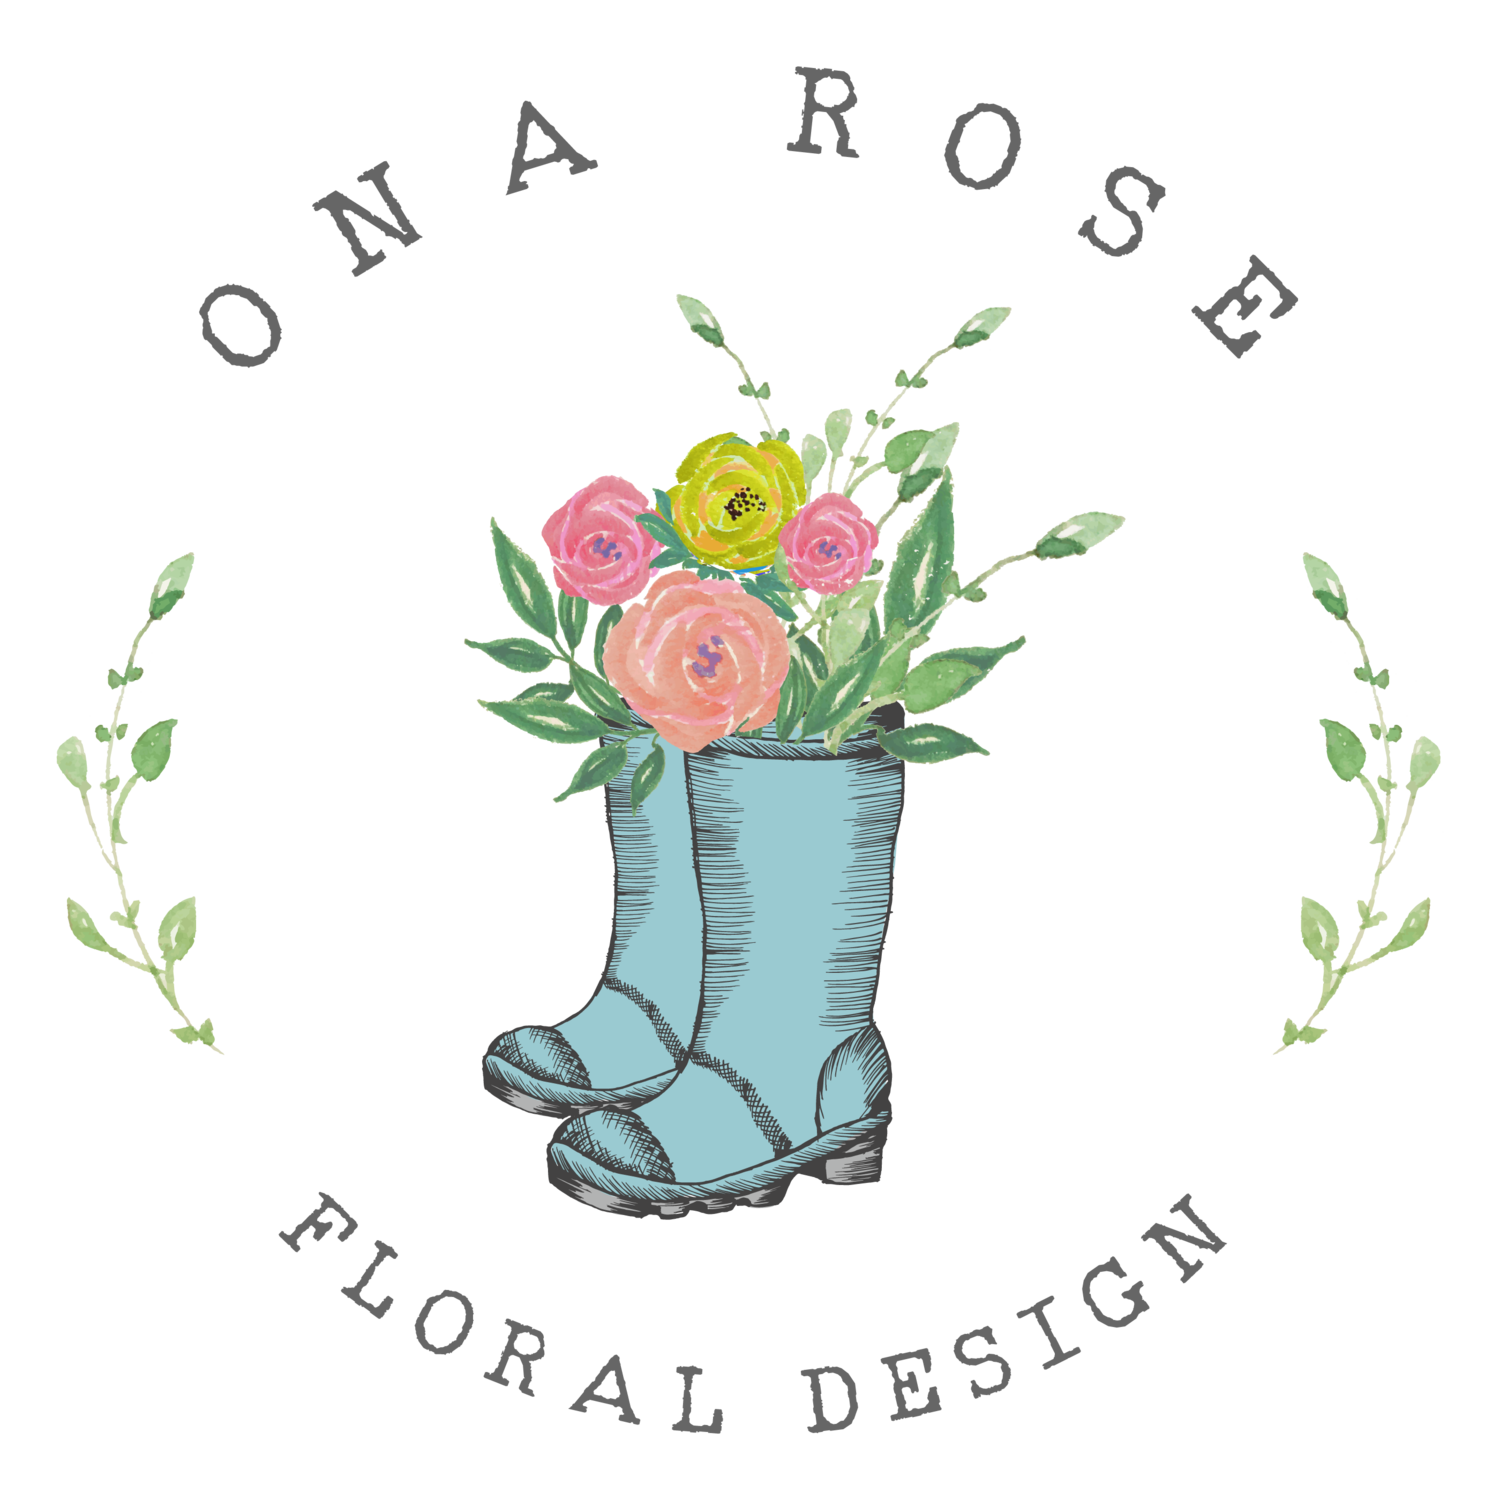 Garland clipart fern. Services ona rose floral